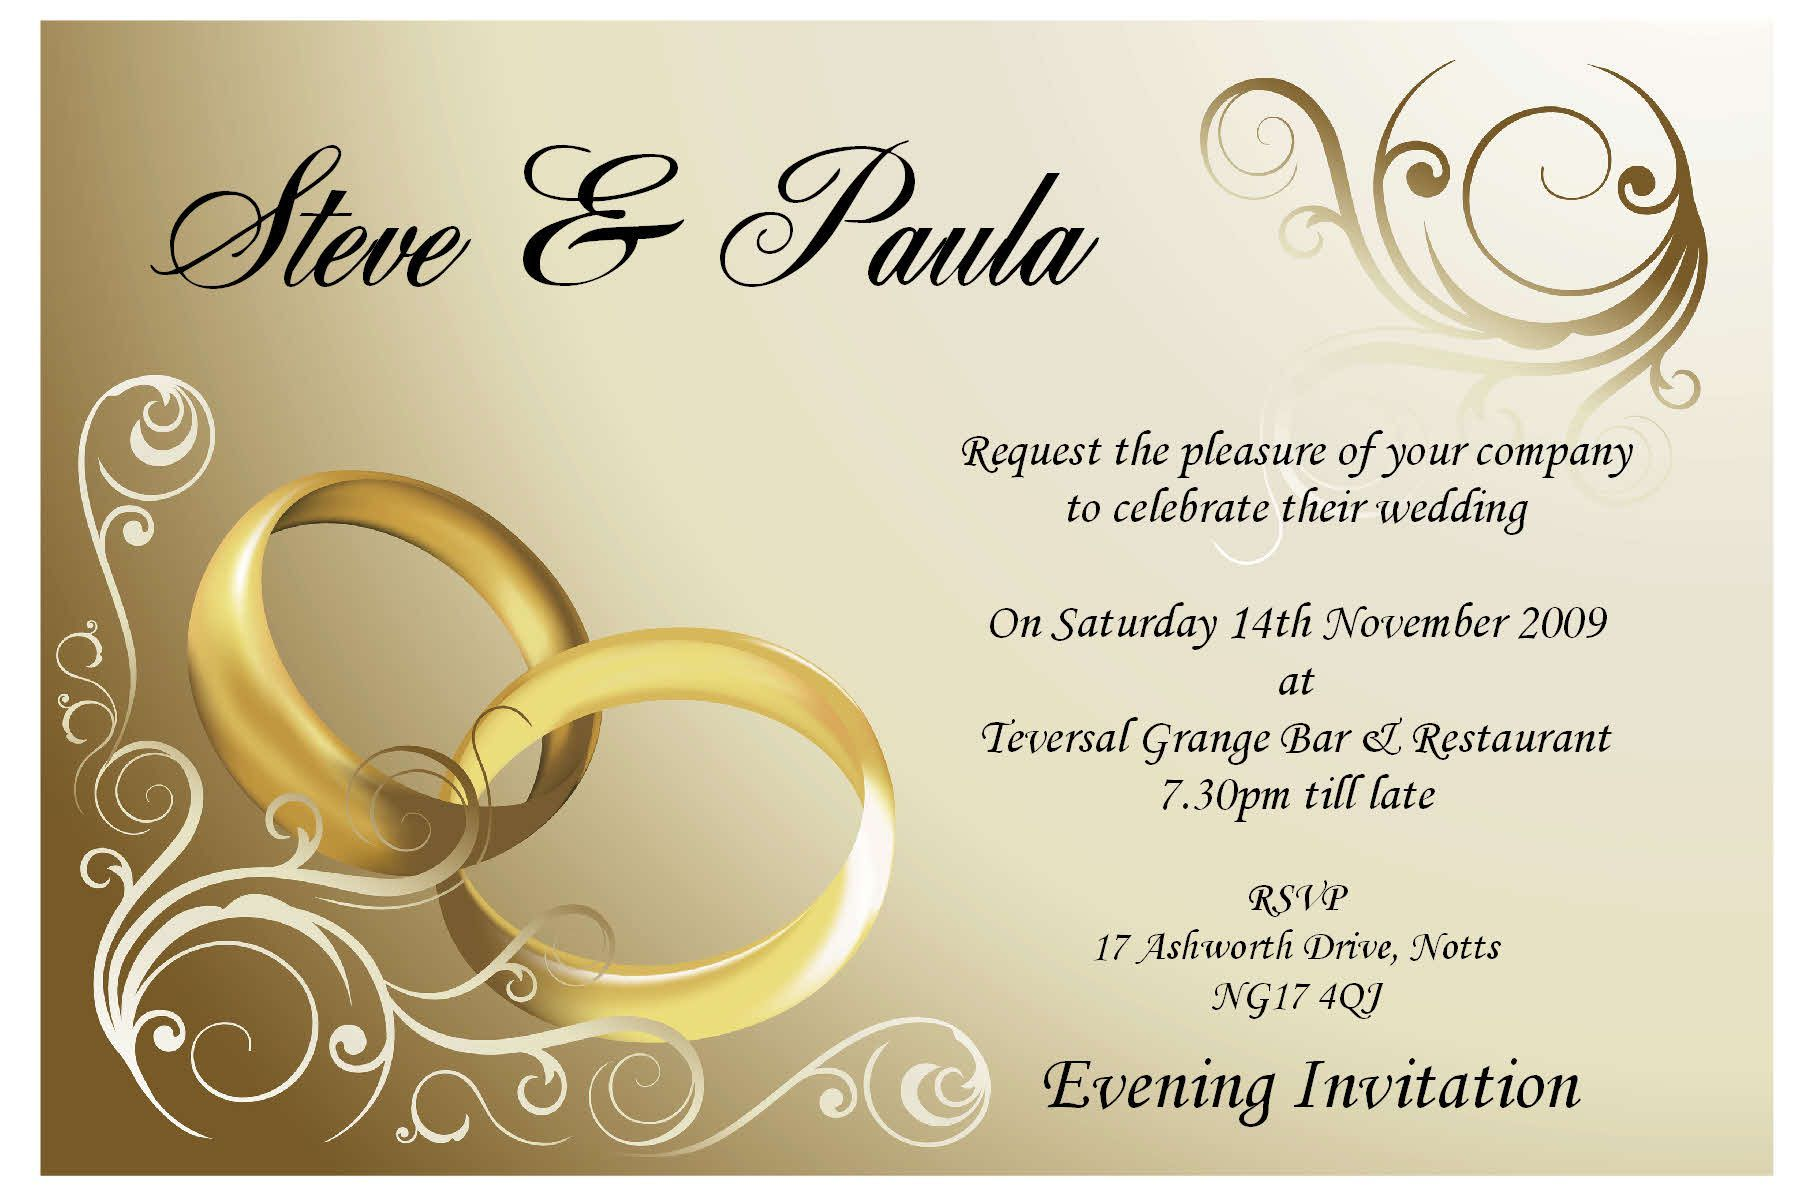 wedding invitation card design #weddingcards #invitationcards